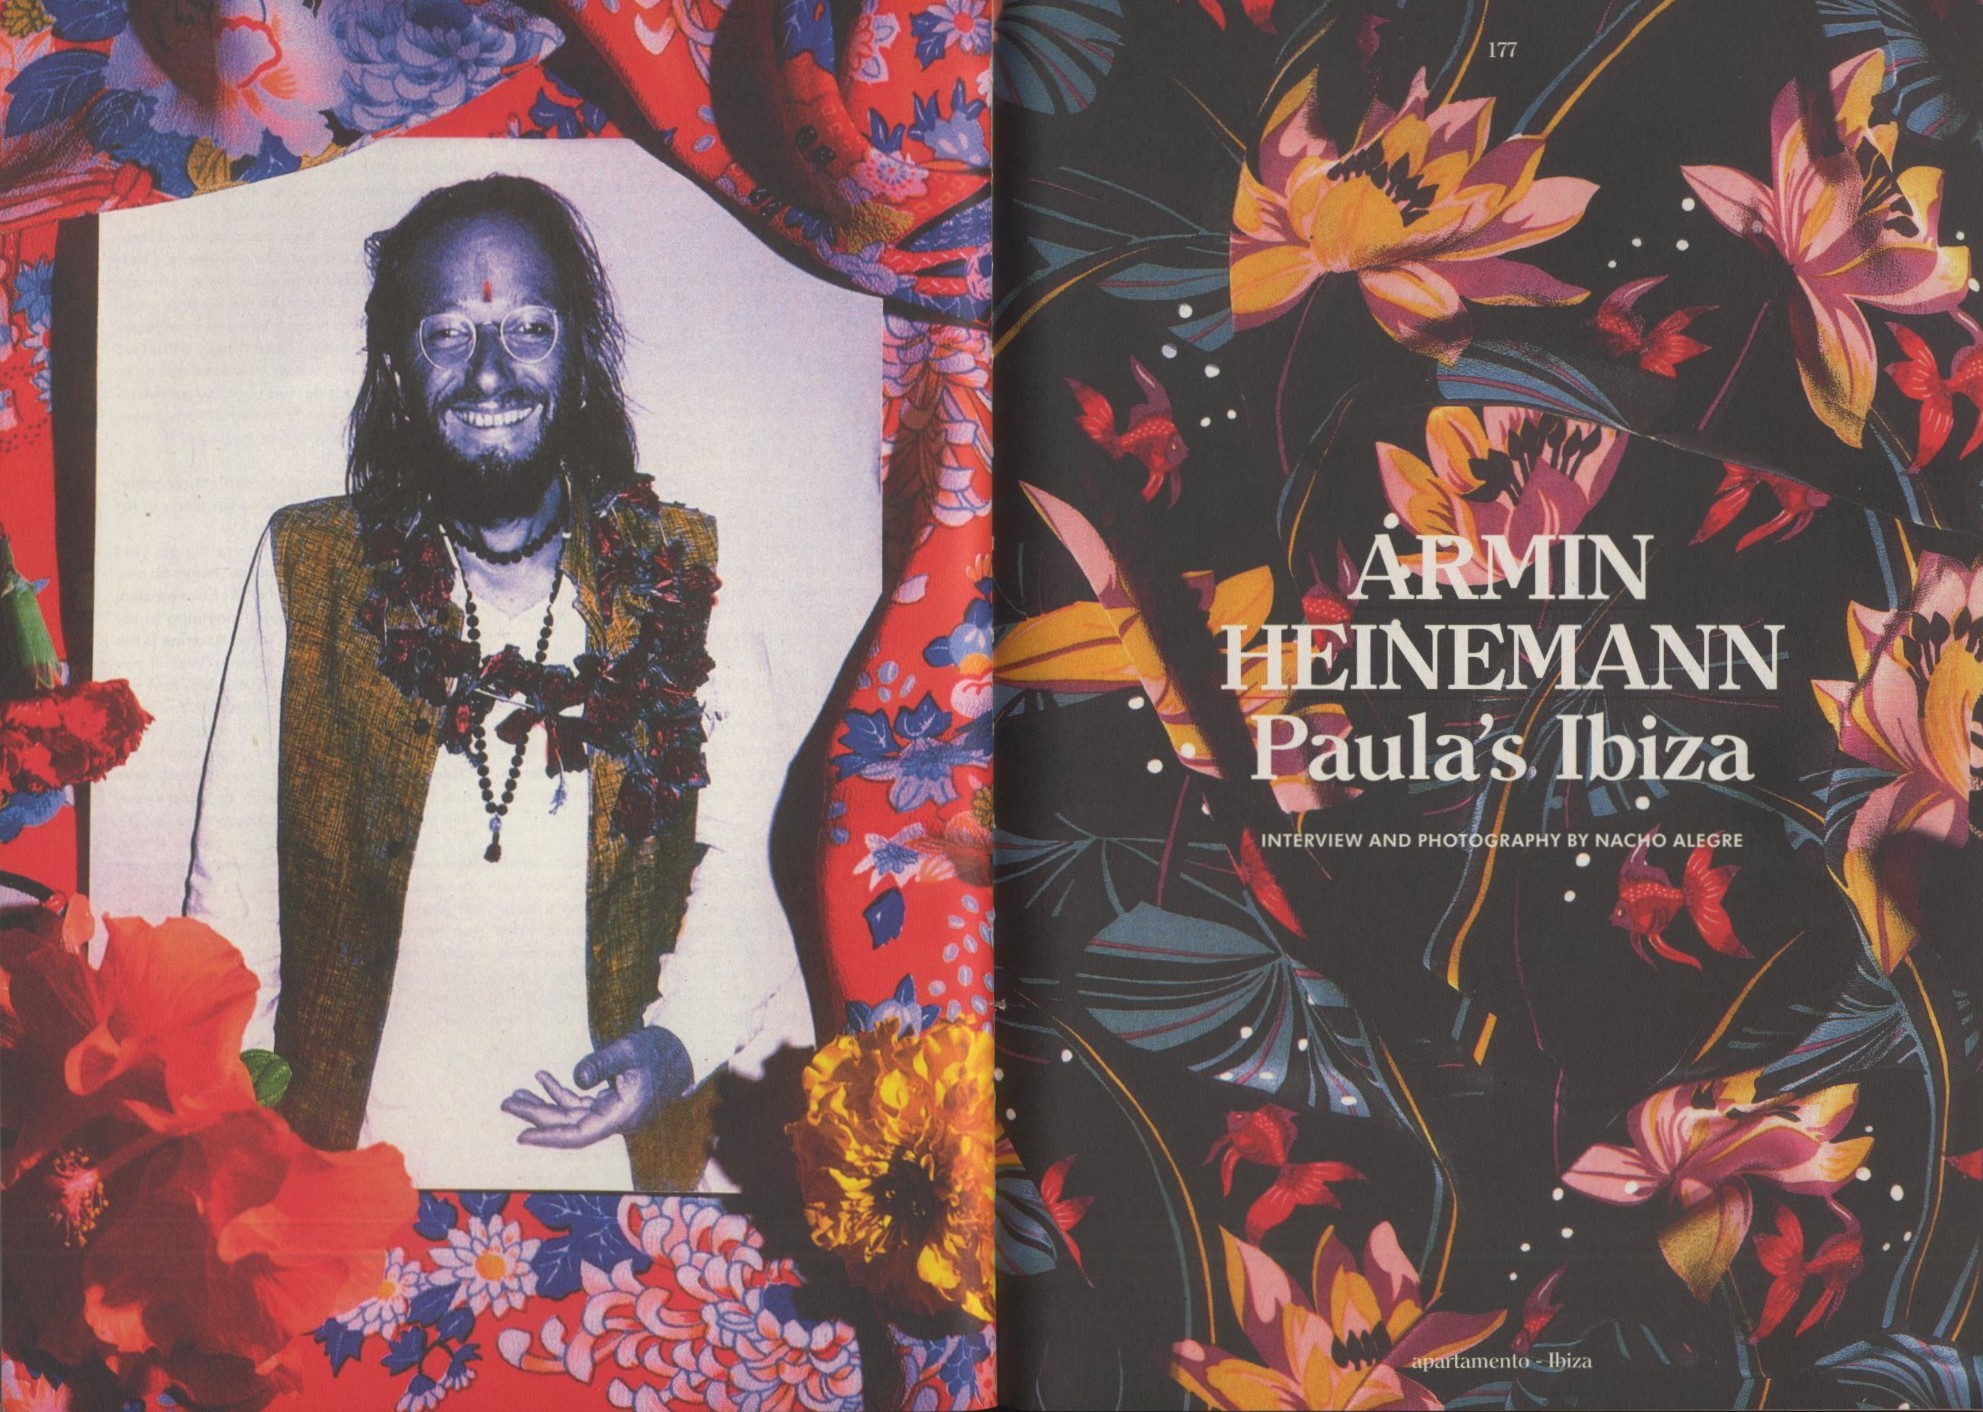 ARMIN HEINEMANN | PAULA'S IBIZA | INTERVIEW AND PHOTOGRAPHY NACHO ALEGRE | APARTAMENTO MAGAZINE | ISSUE #15 | SPRING/SUMMER 2015